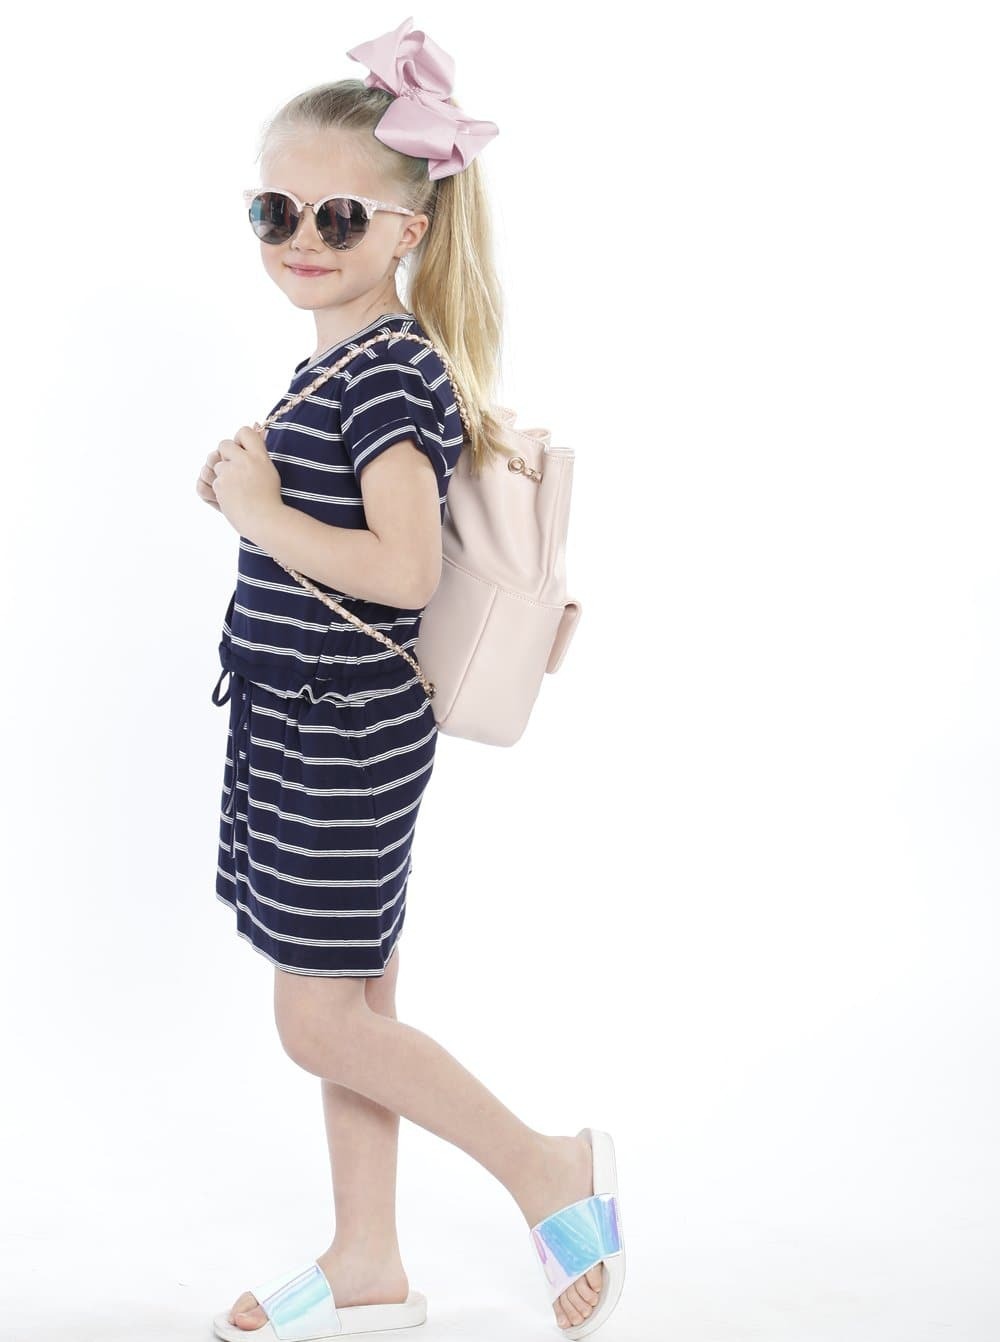 TDD - The Daughter Drawstring Dress - Navy & White Stripes - Angel Maternity - Maternity clothes - shop online